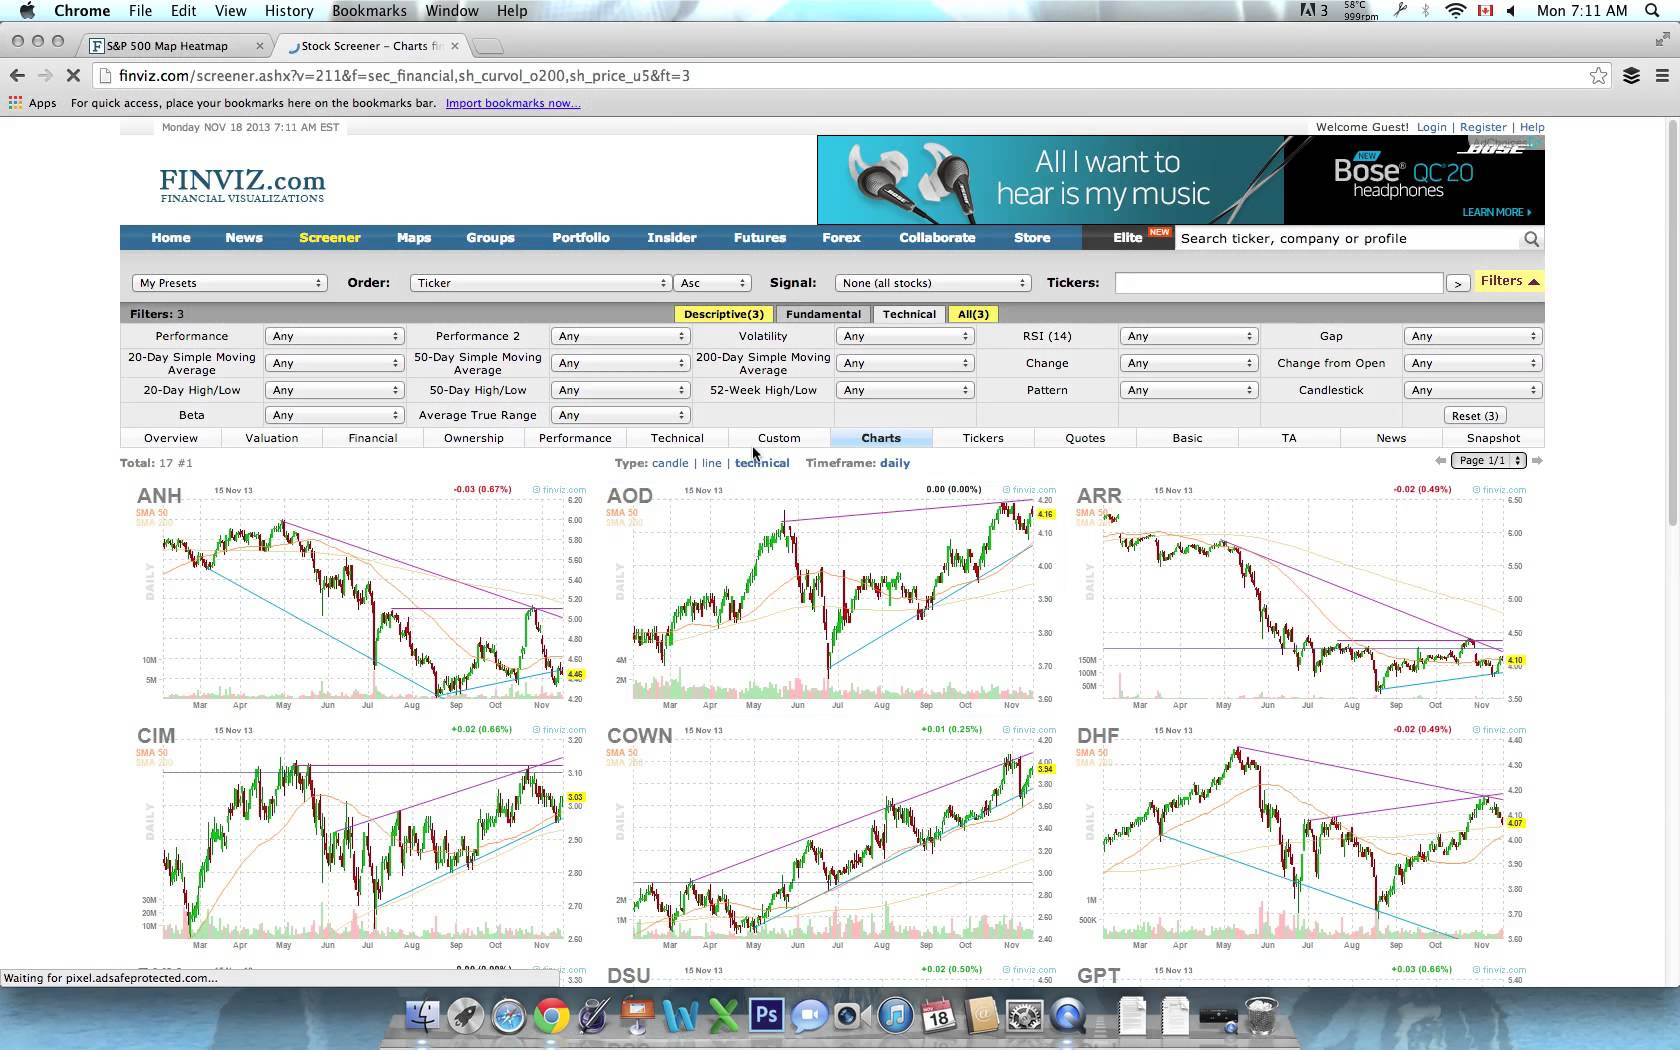 How To Find The Best Penny Stocks To Buy Right Now Please Teach Me